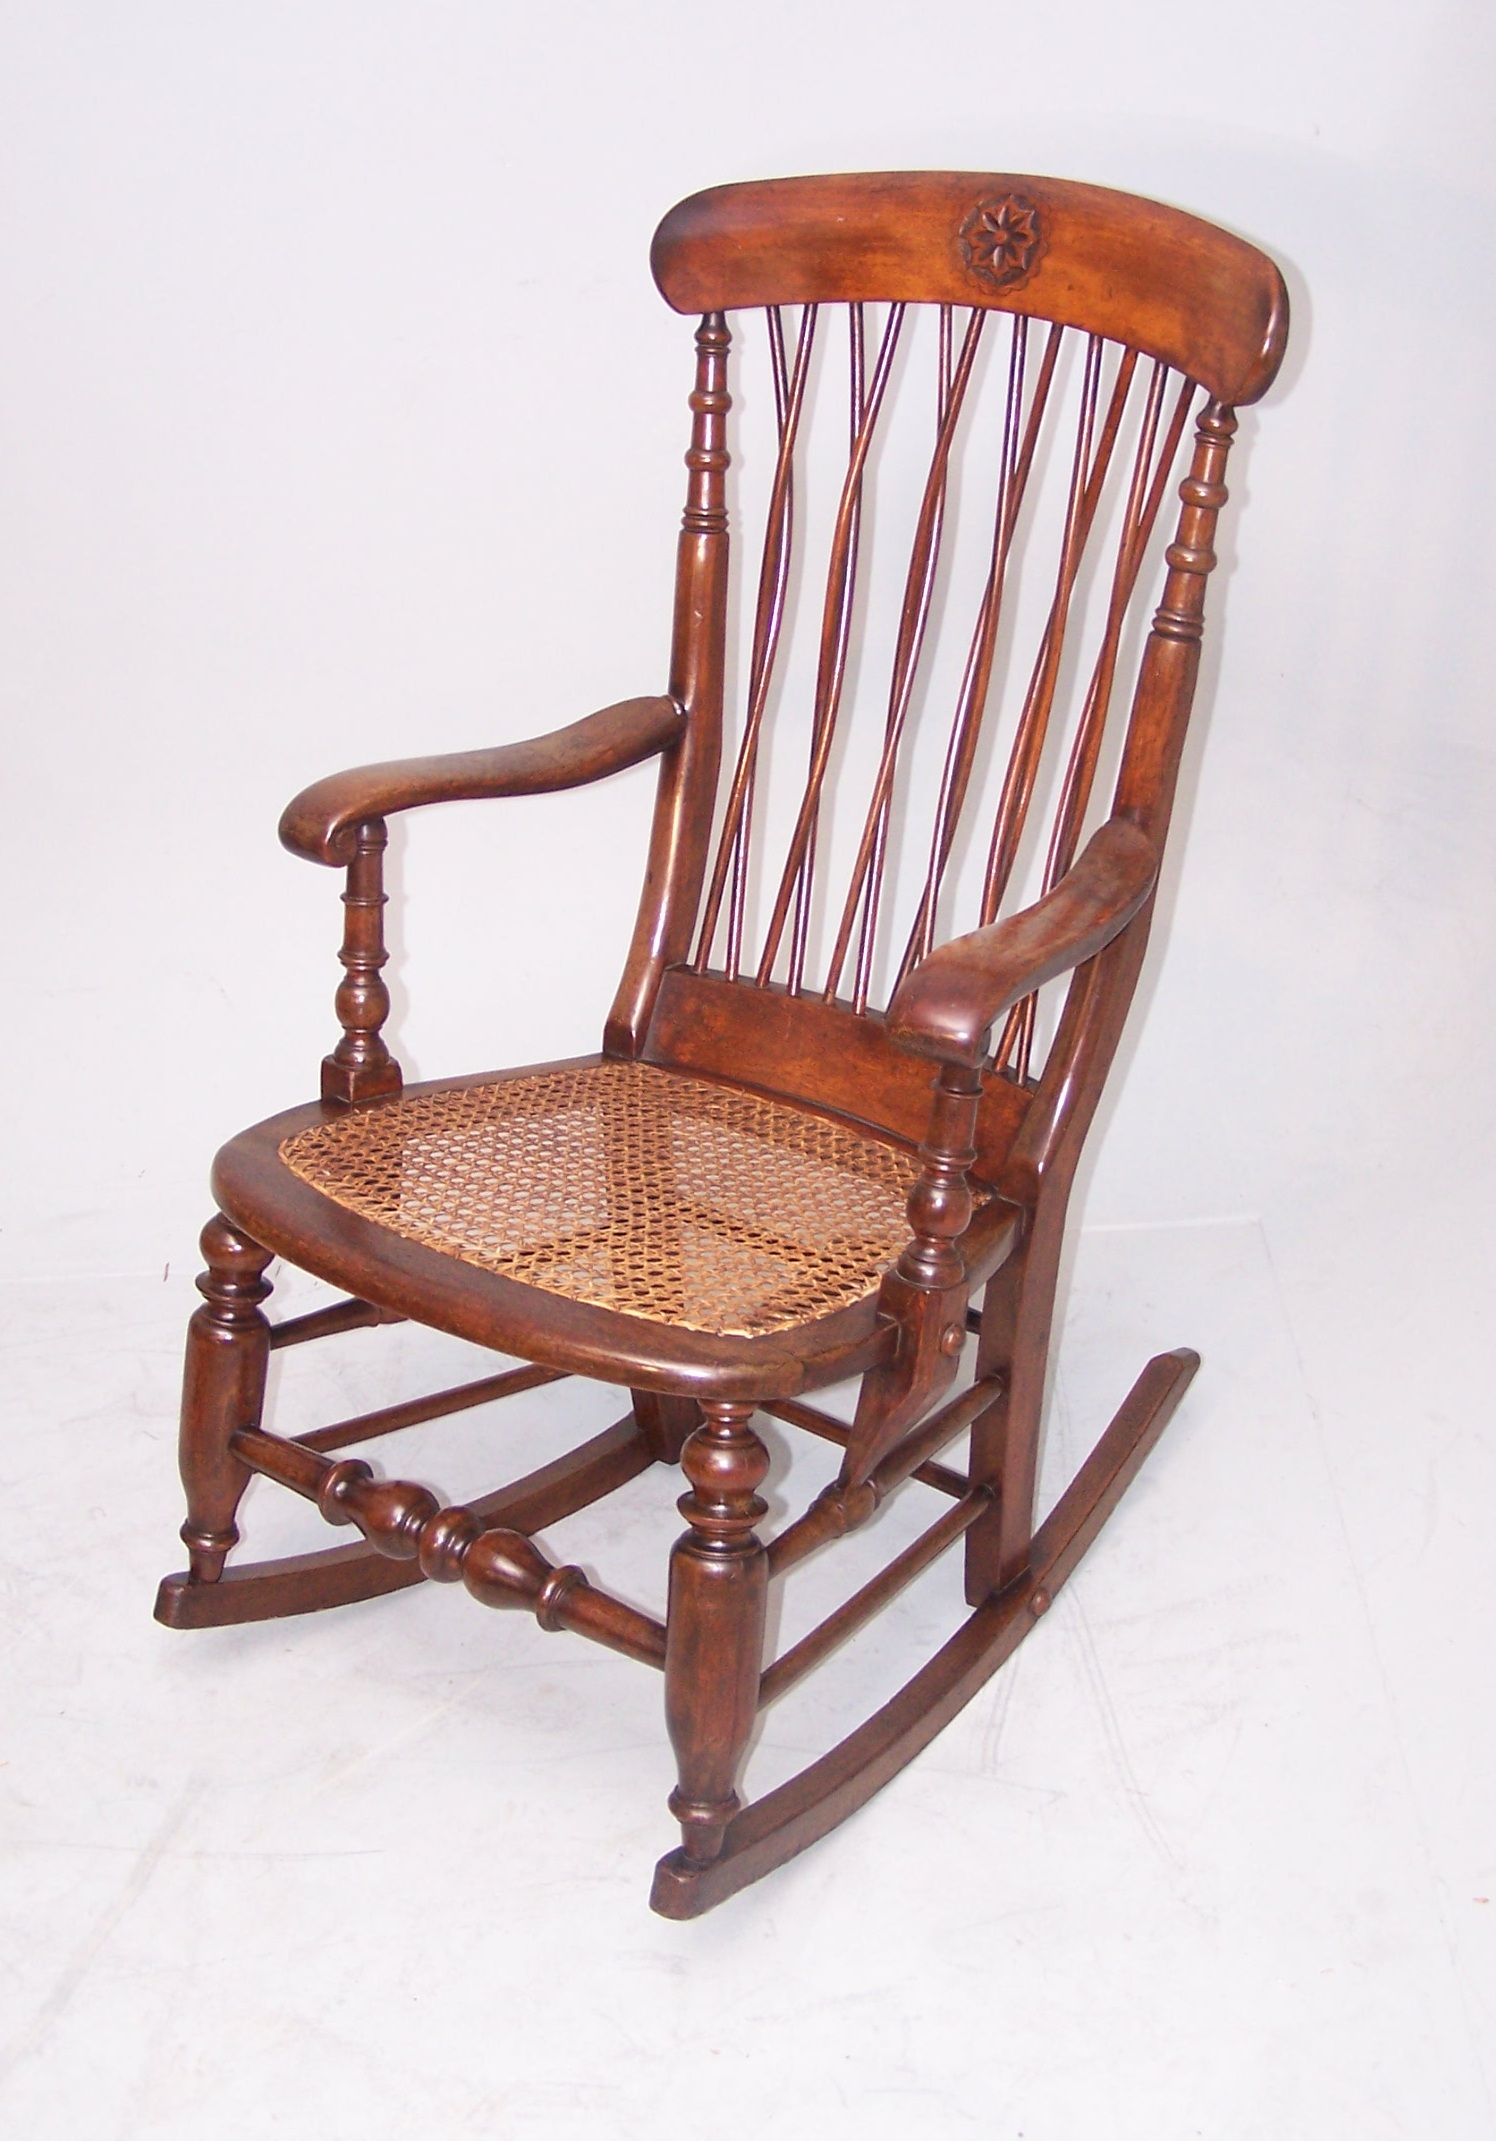 Charmant ... Antique Unusual Rocking Chair Image 4